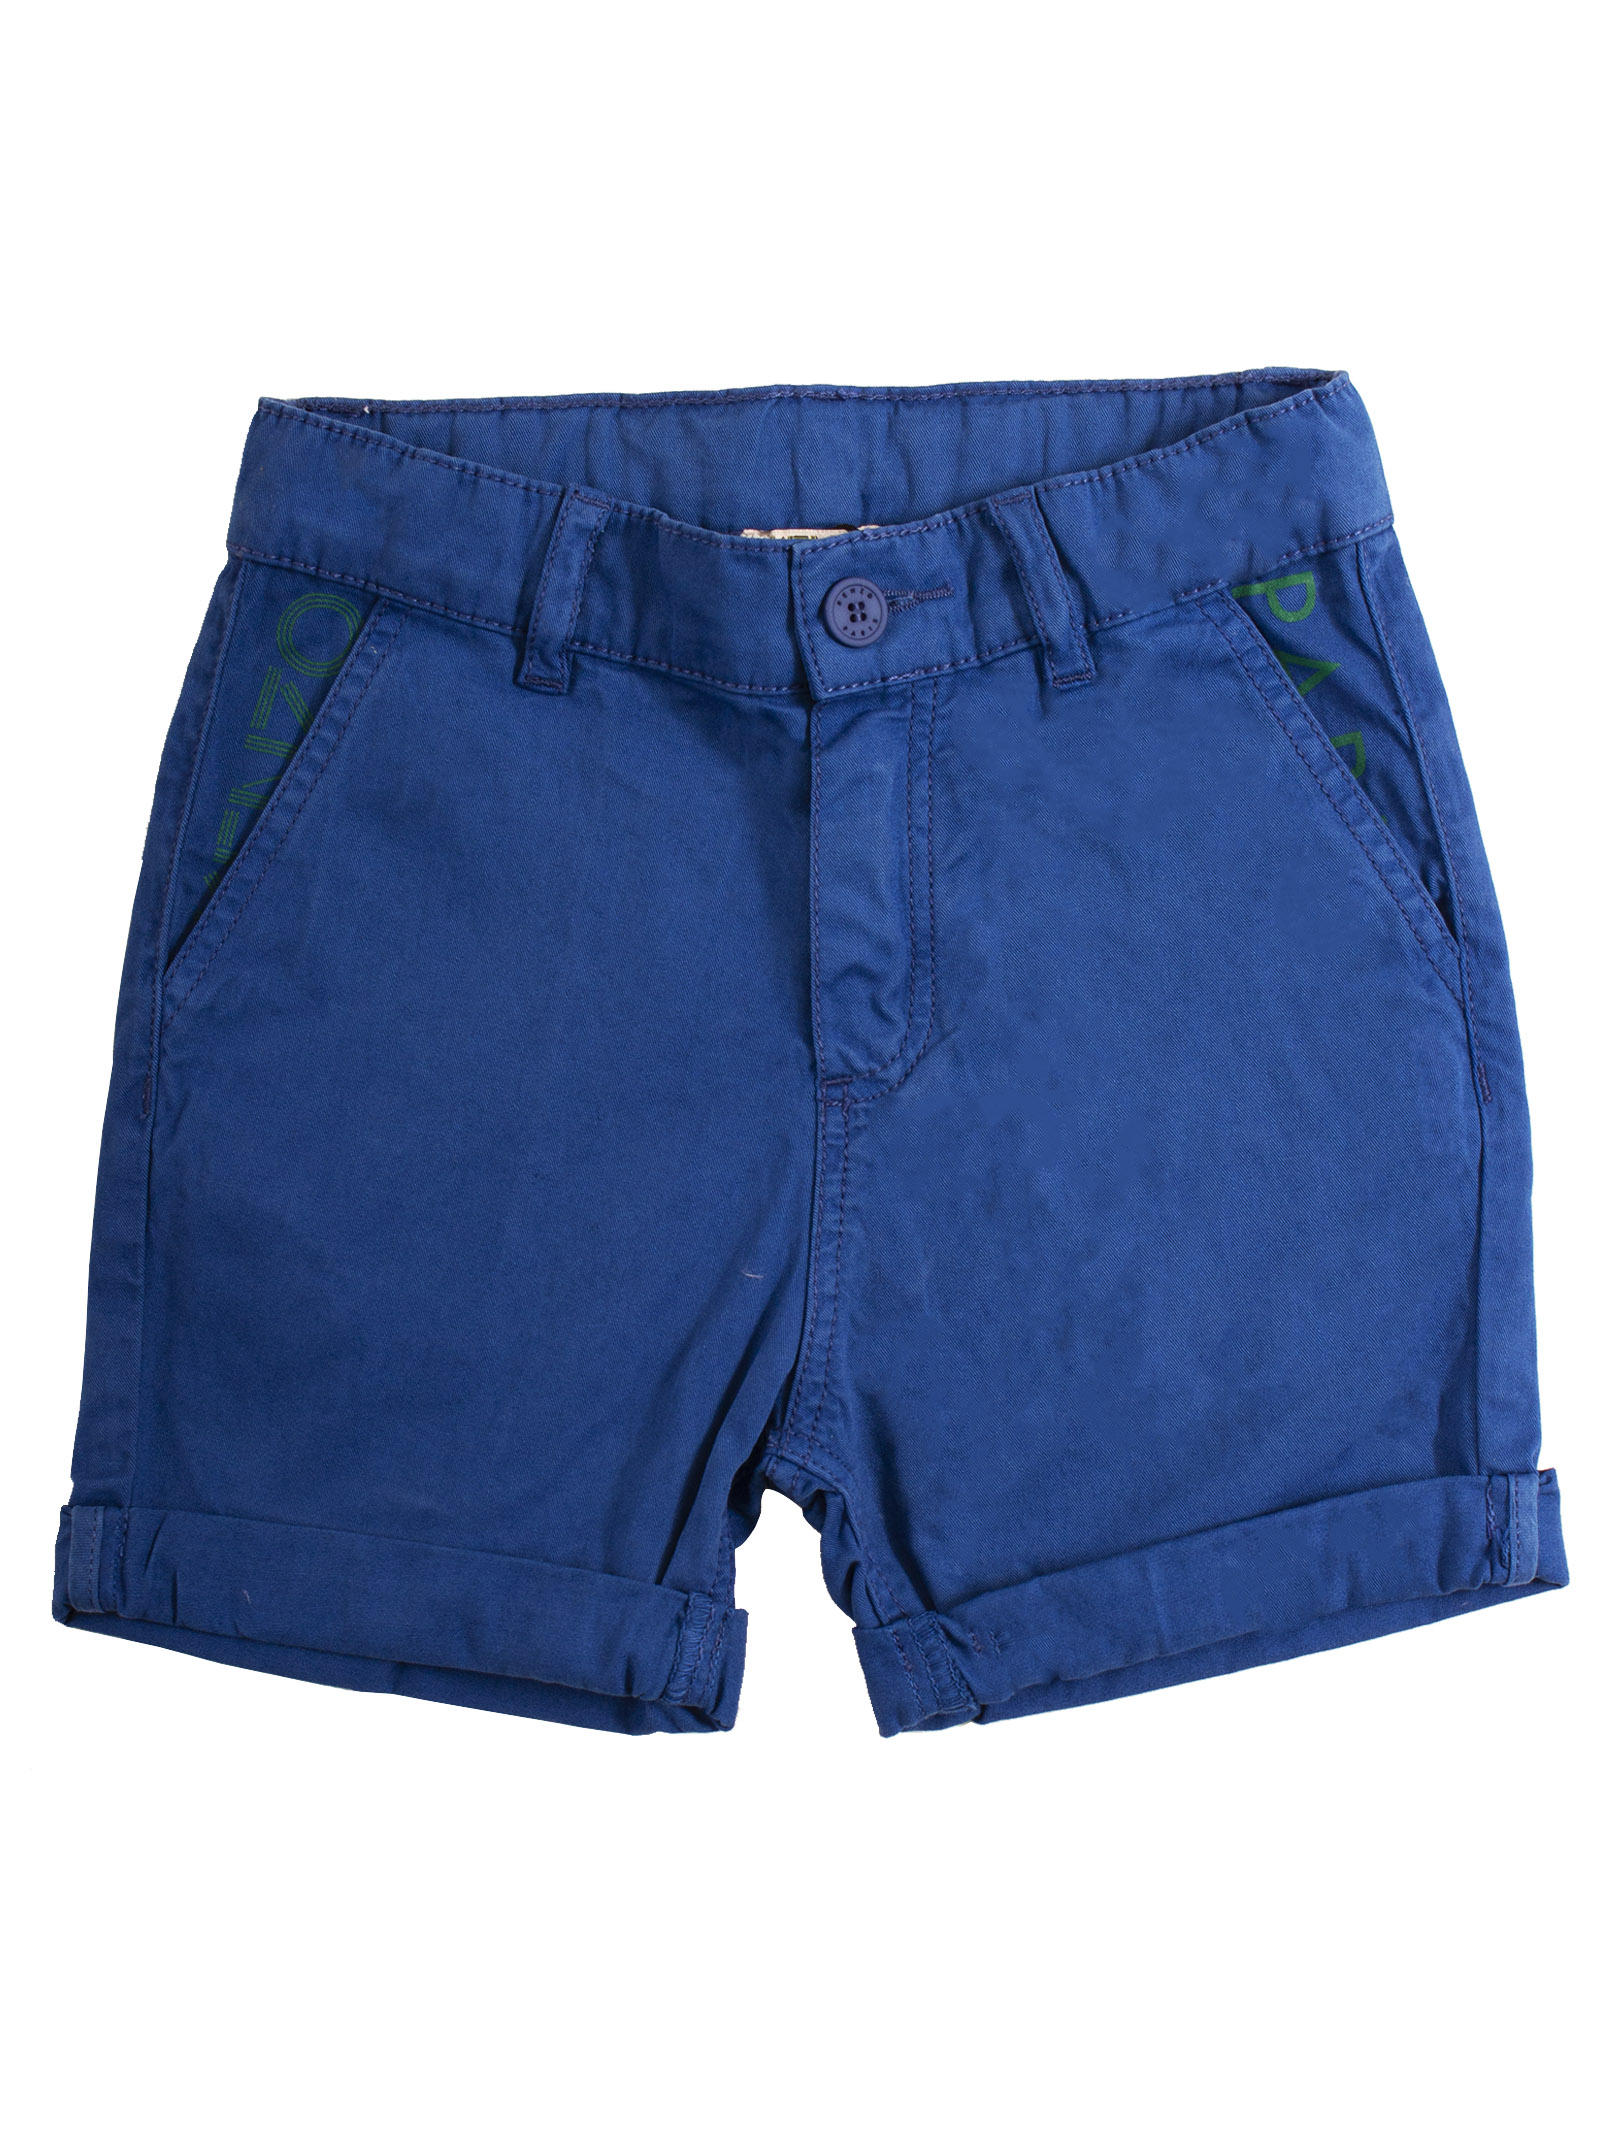 e6a661d0af0 HOME   CATEGORIES BOY   CLOTHING   BERMUDA   BERMUDA SHORTS WITH PRINT